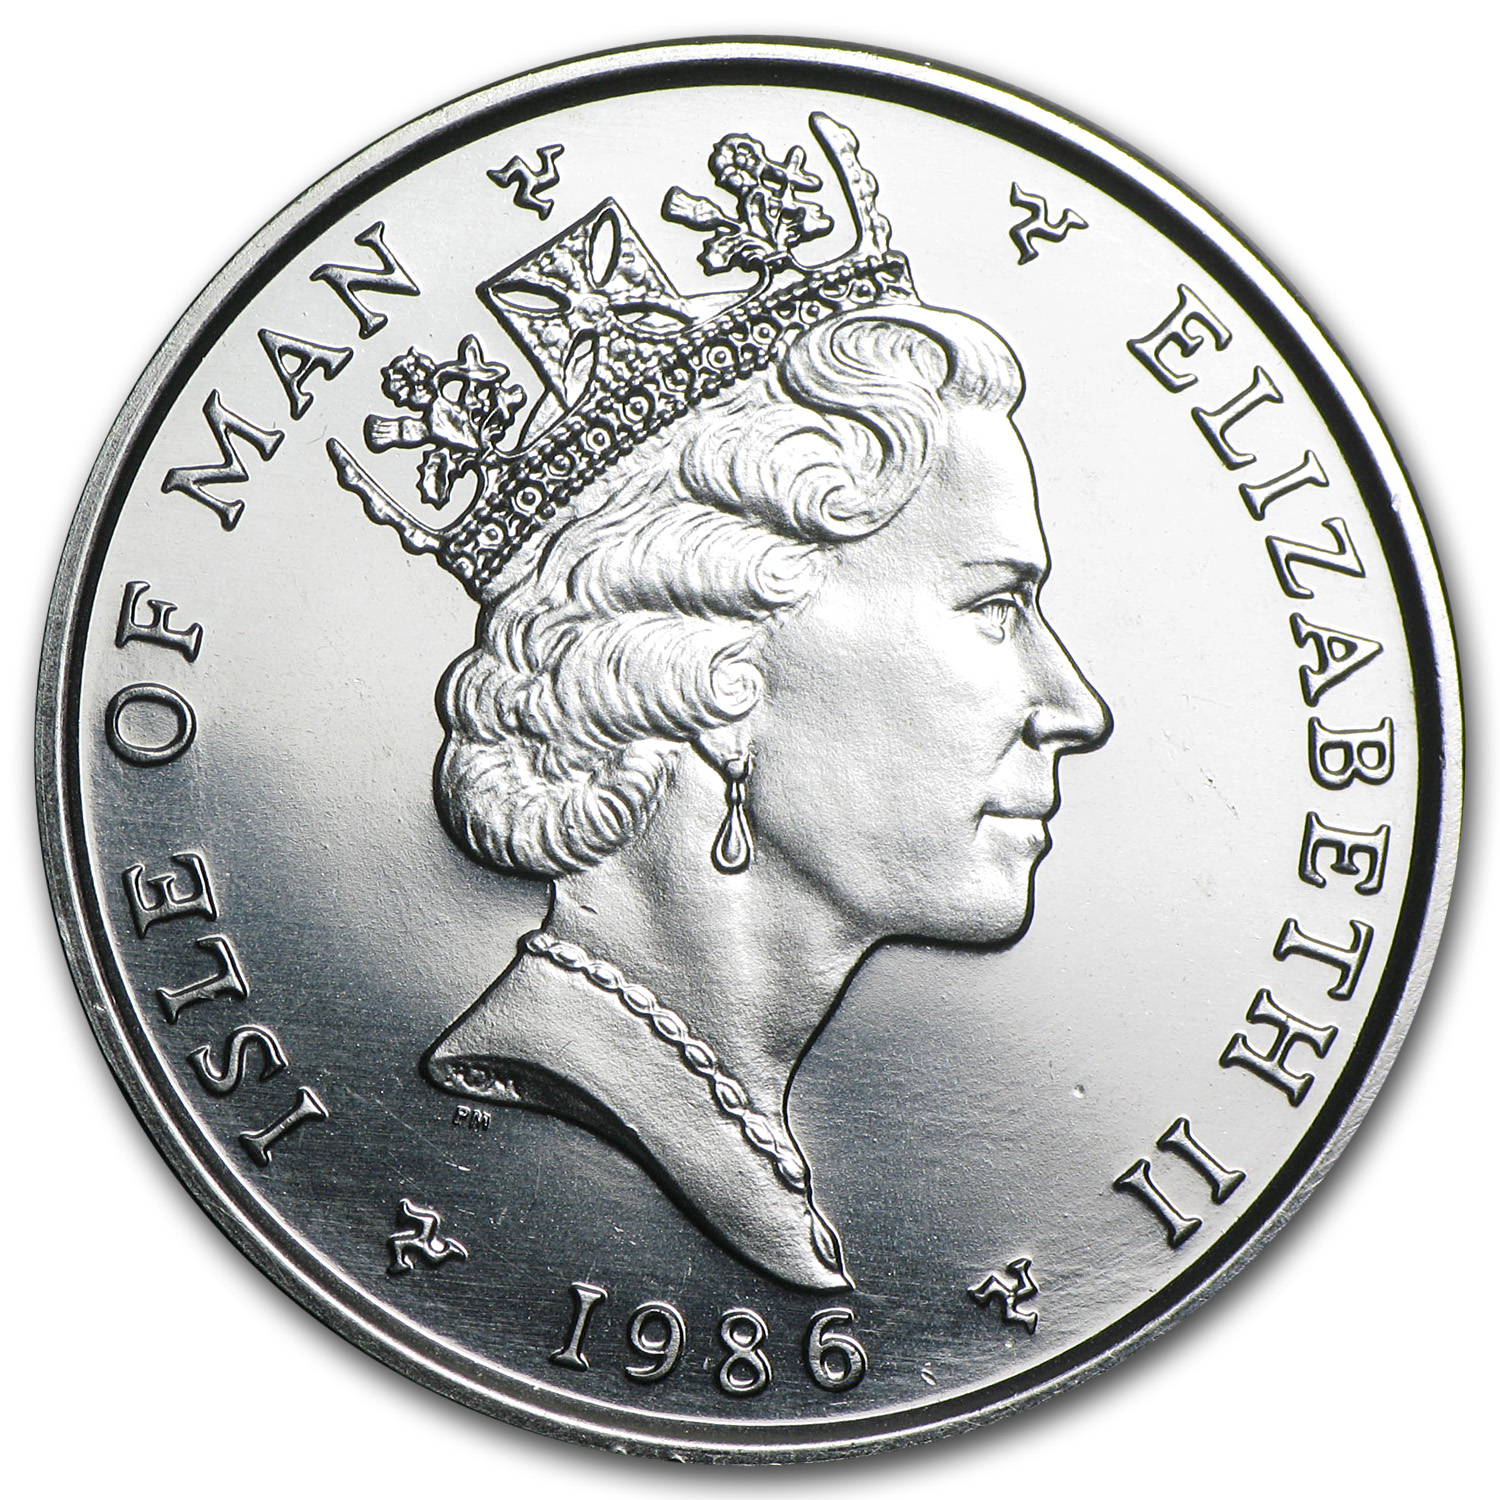 1986 1 oz Isle of Man Platinum Noble (Brilliant Uncirculated)